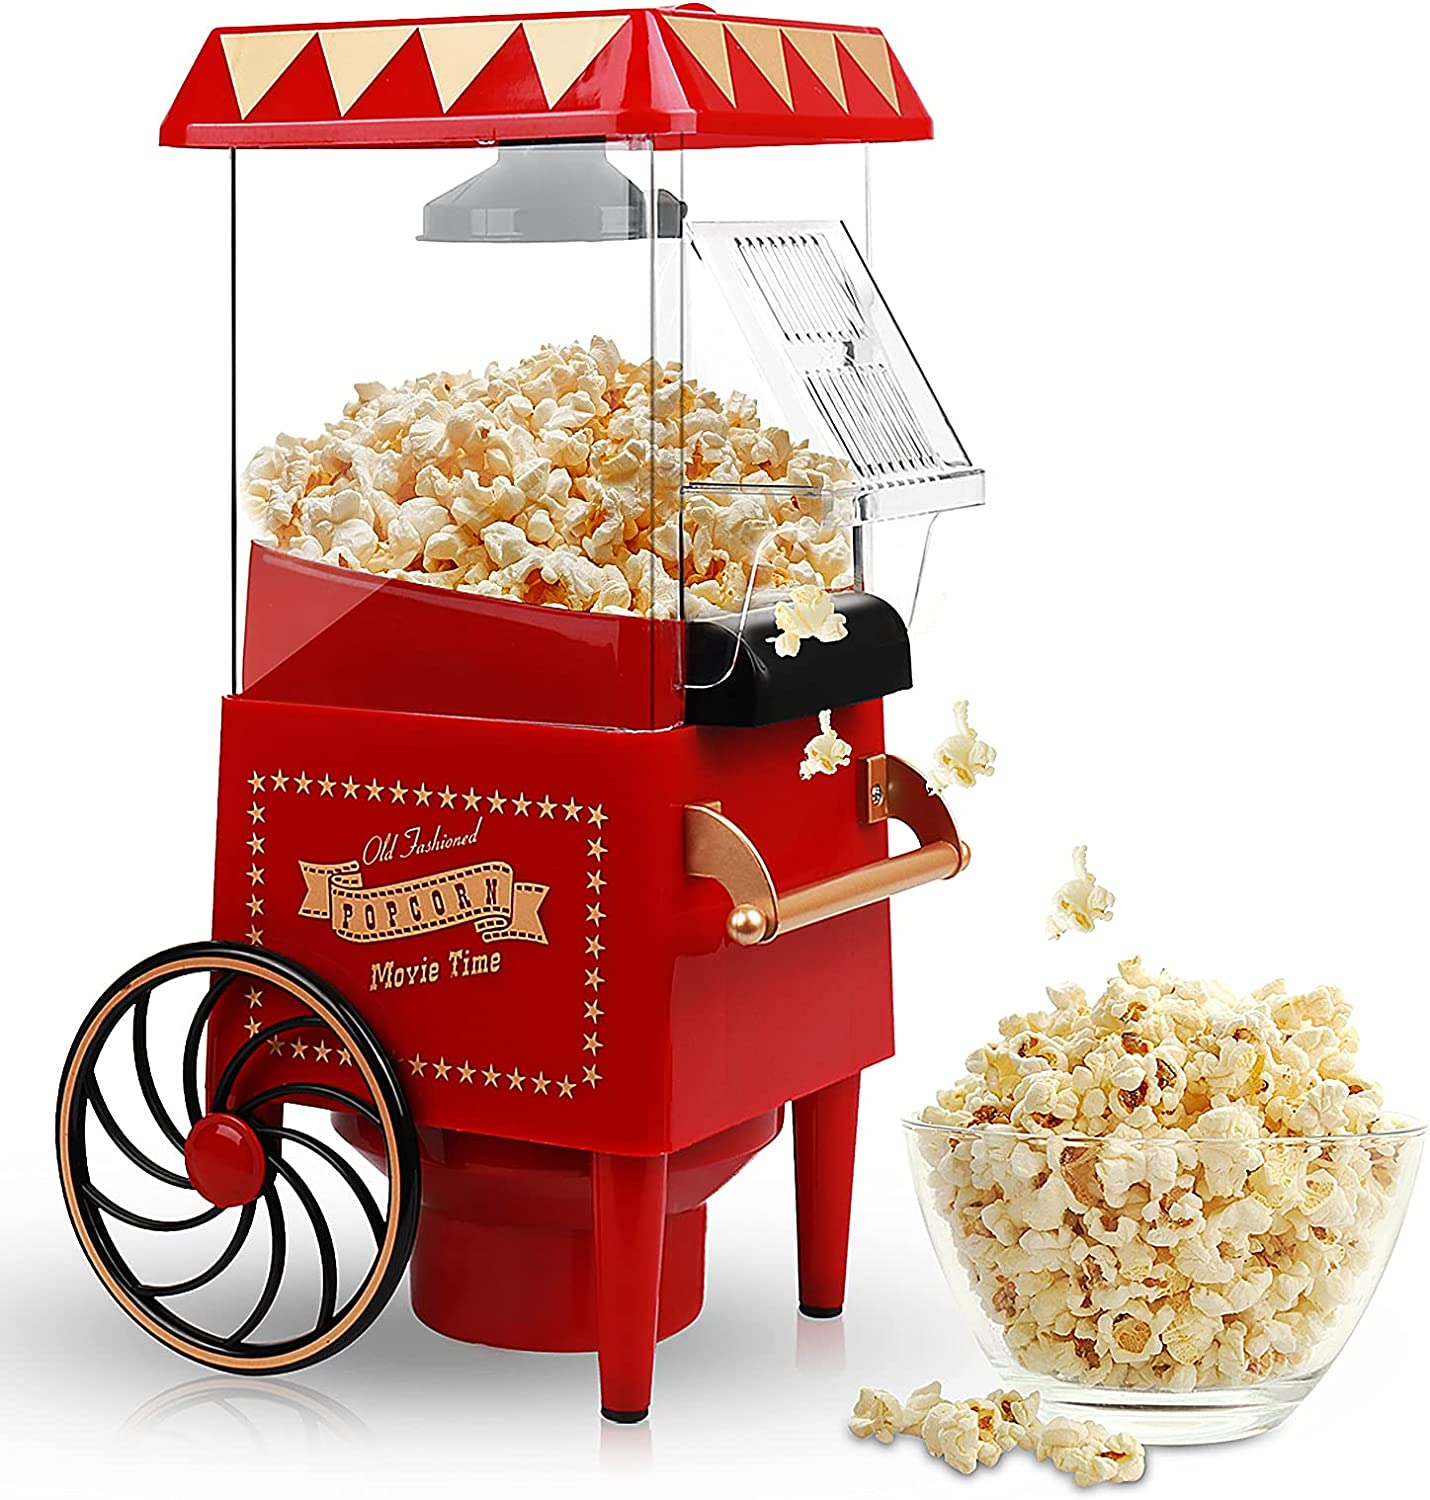 Popcorn Maker, Hot Air Popcorn Machine 1200W Vintage Tabletop Electric Popcorn Popper, Healthy and Quick Snack Suitable for Home Use, Party, Movie Nights and Birthday Gift (Red)